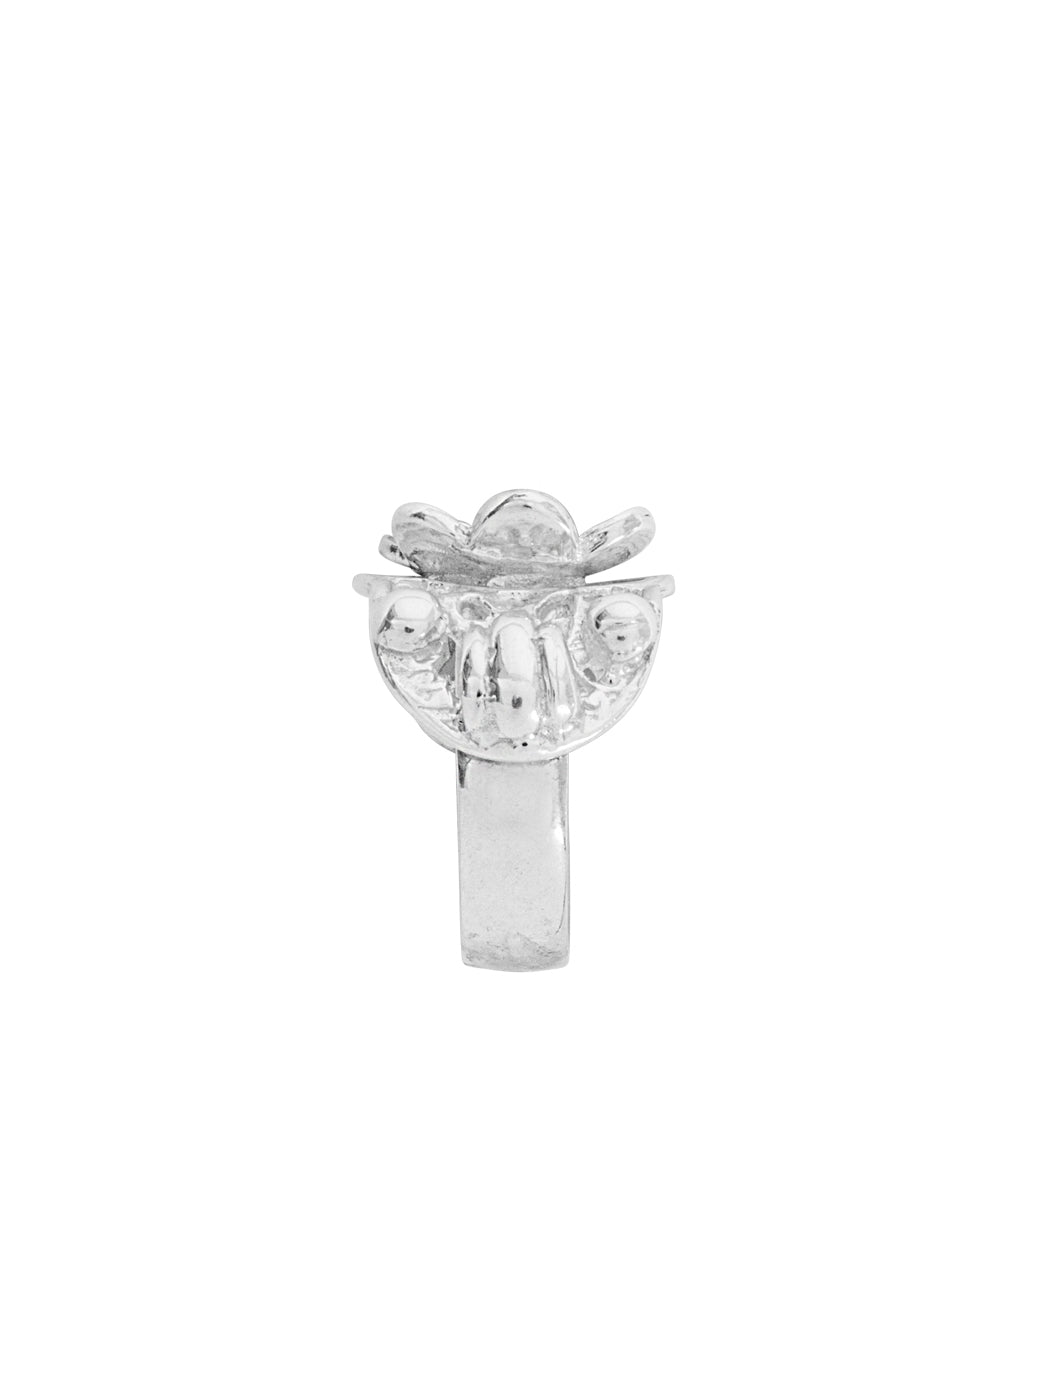 Fiorina Jewellery Garden Ring Shank View